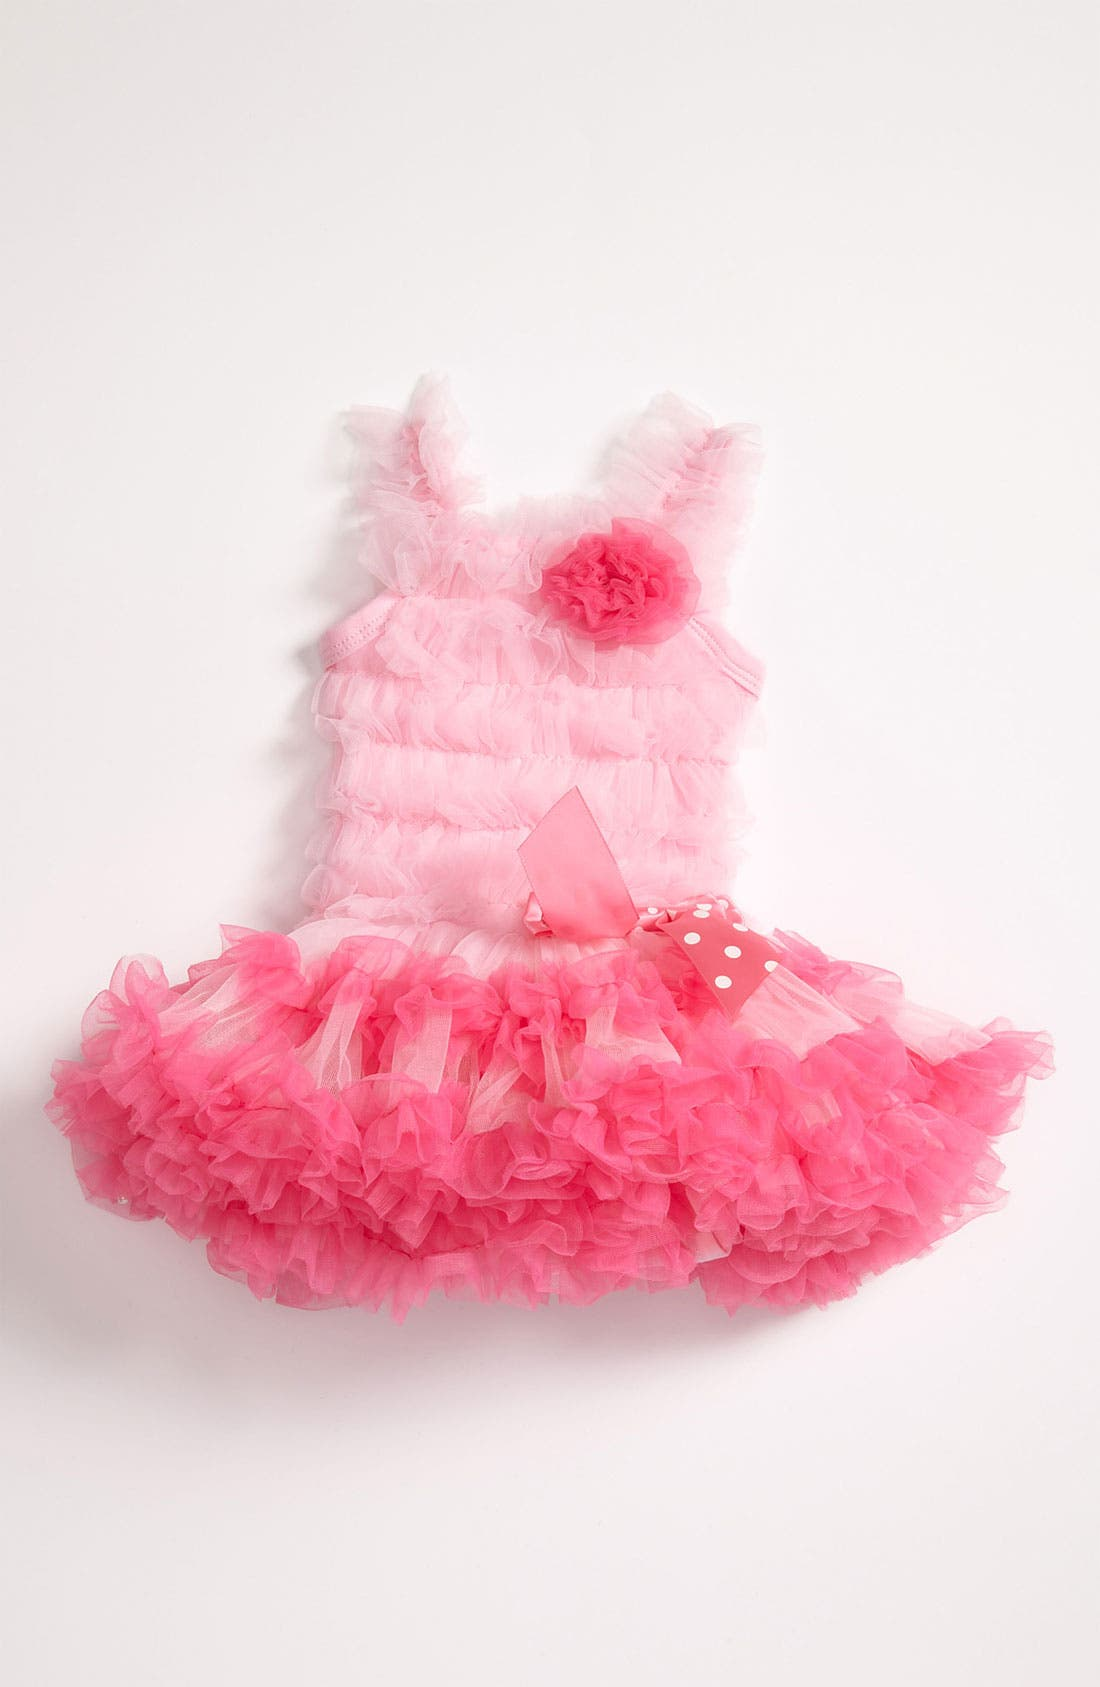 Alternate Image 1 Selected - Popatu Ruffle Petticoat Dress (Baby Girls)